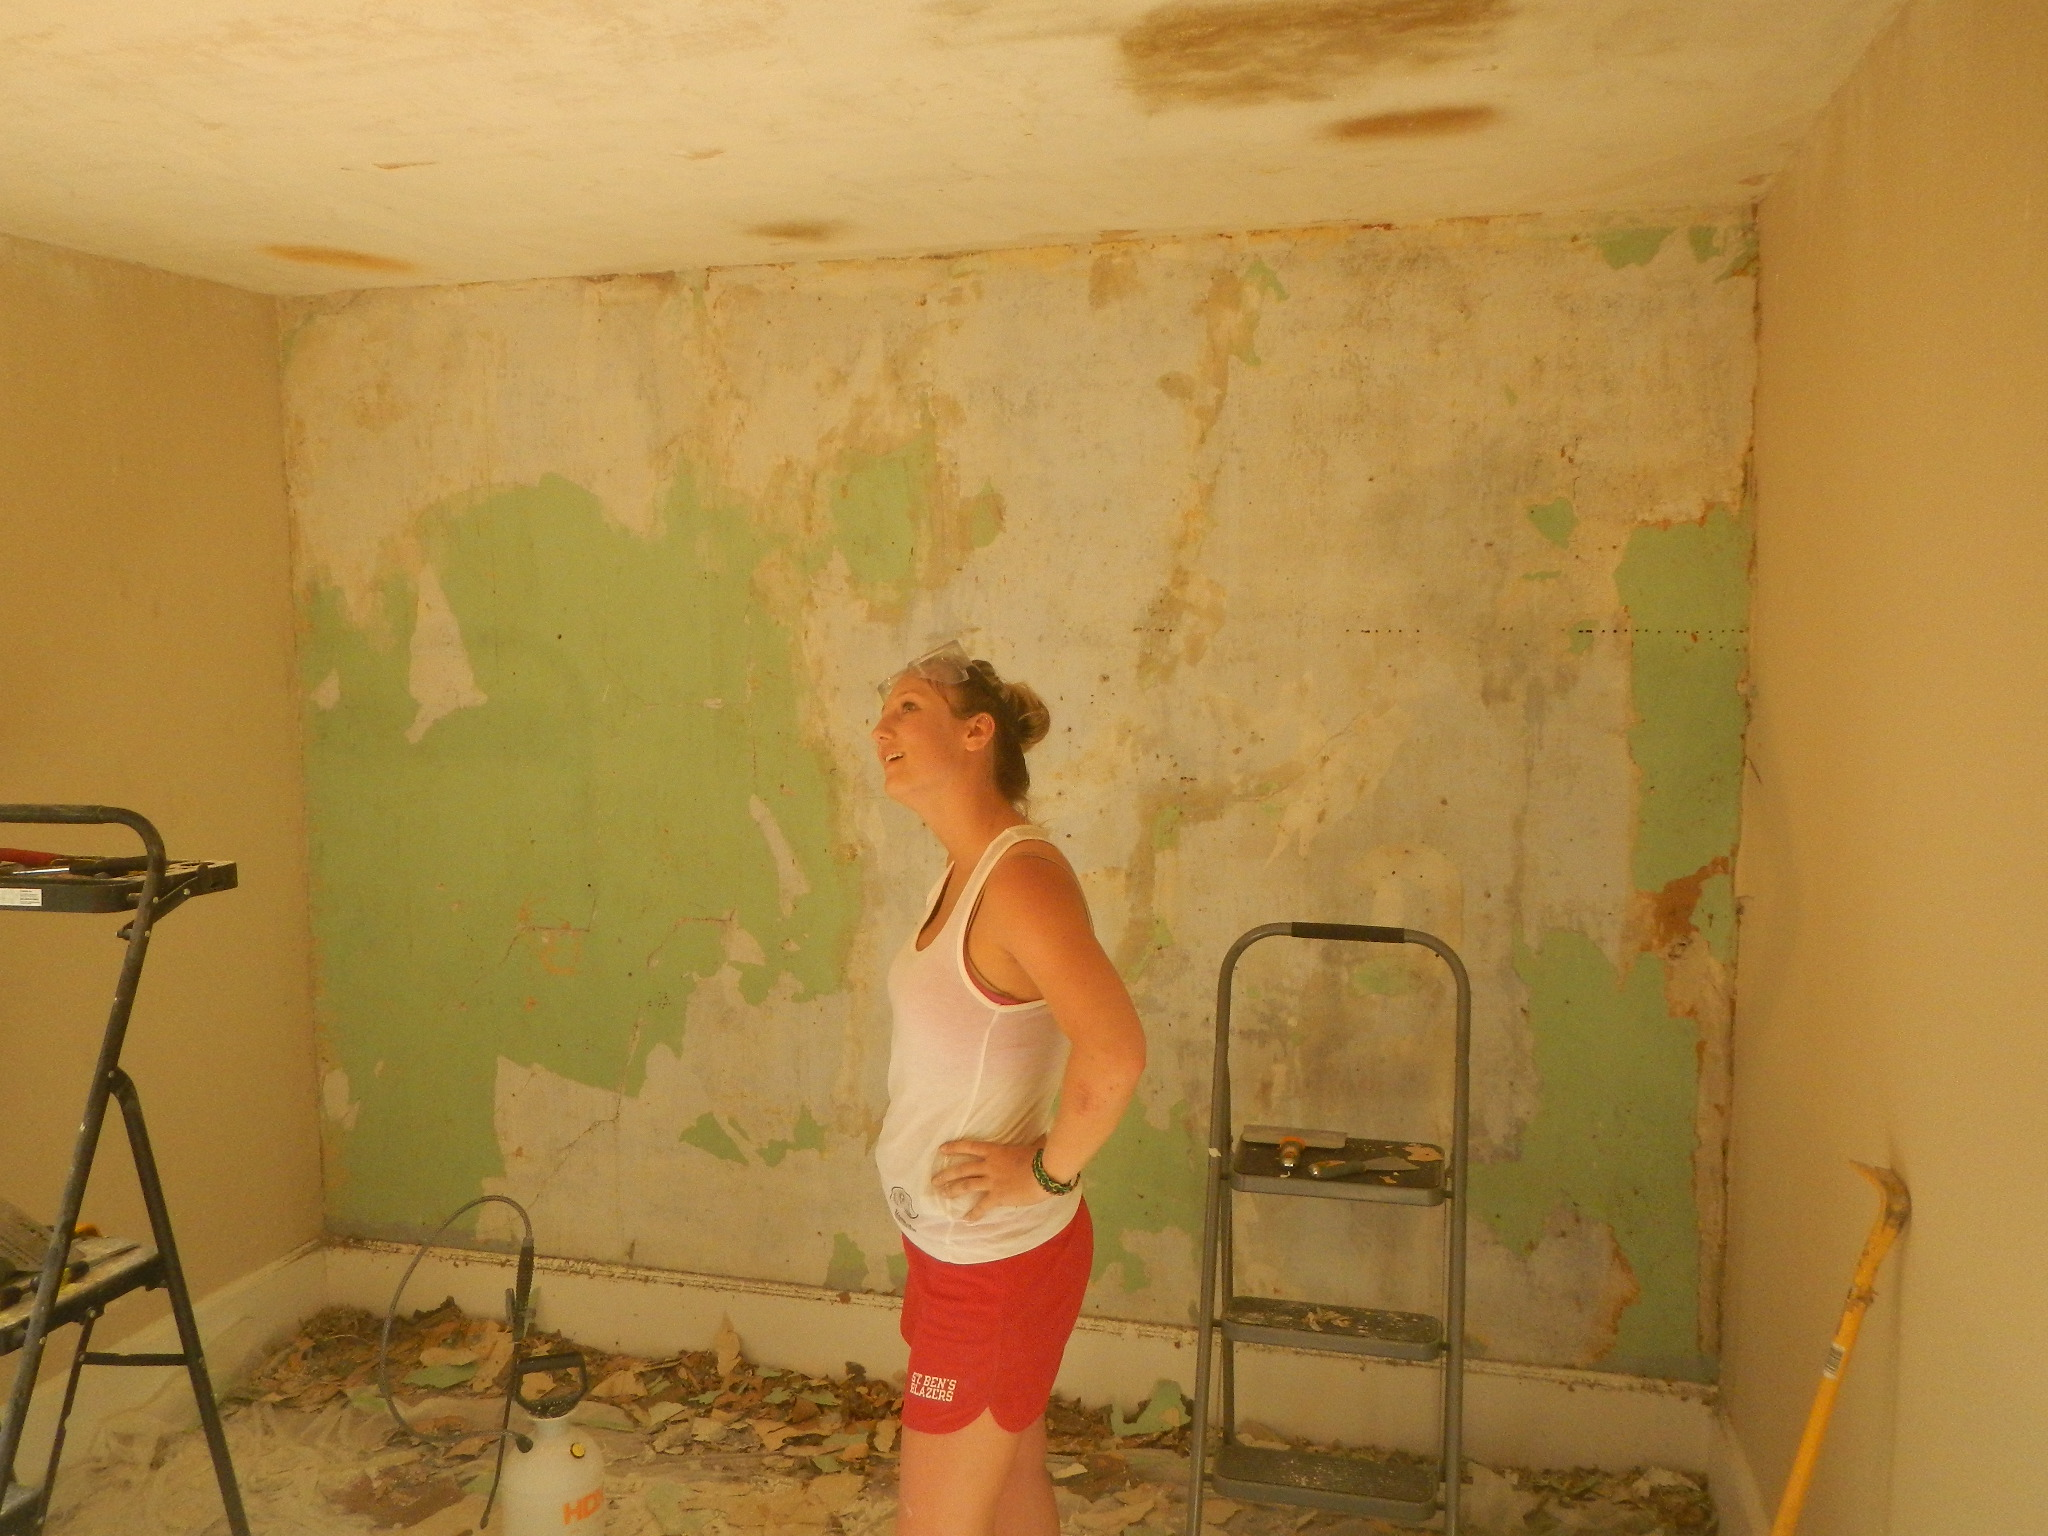 removing wallpaper to paint - photo #29